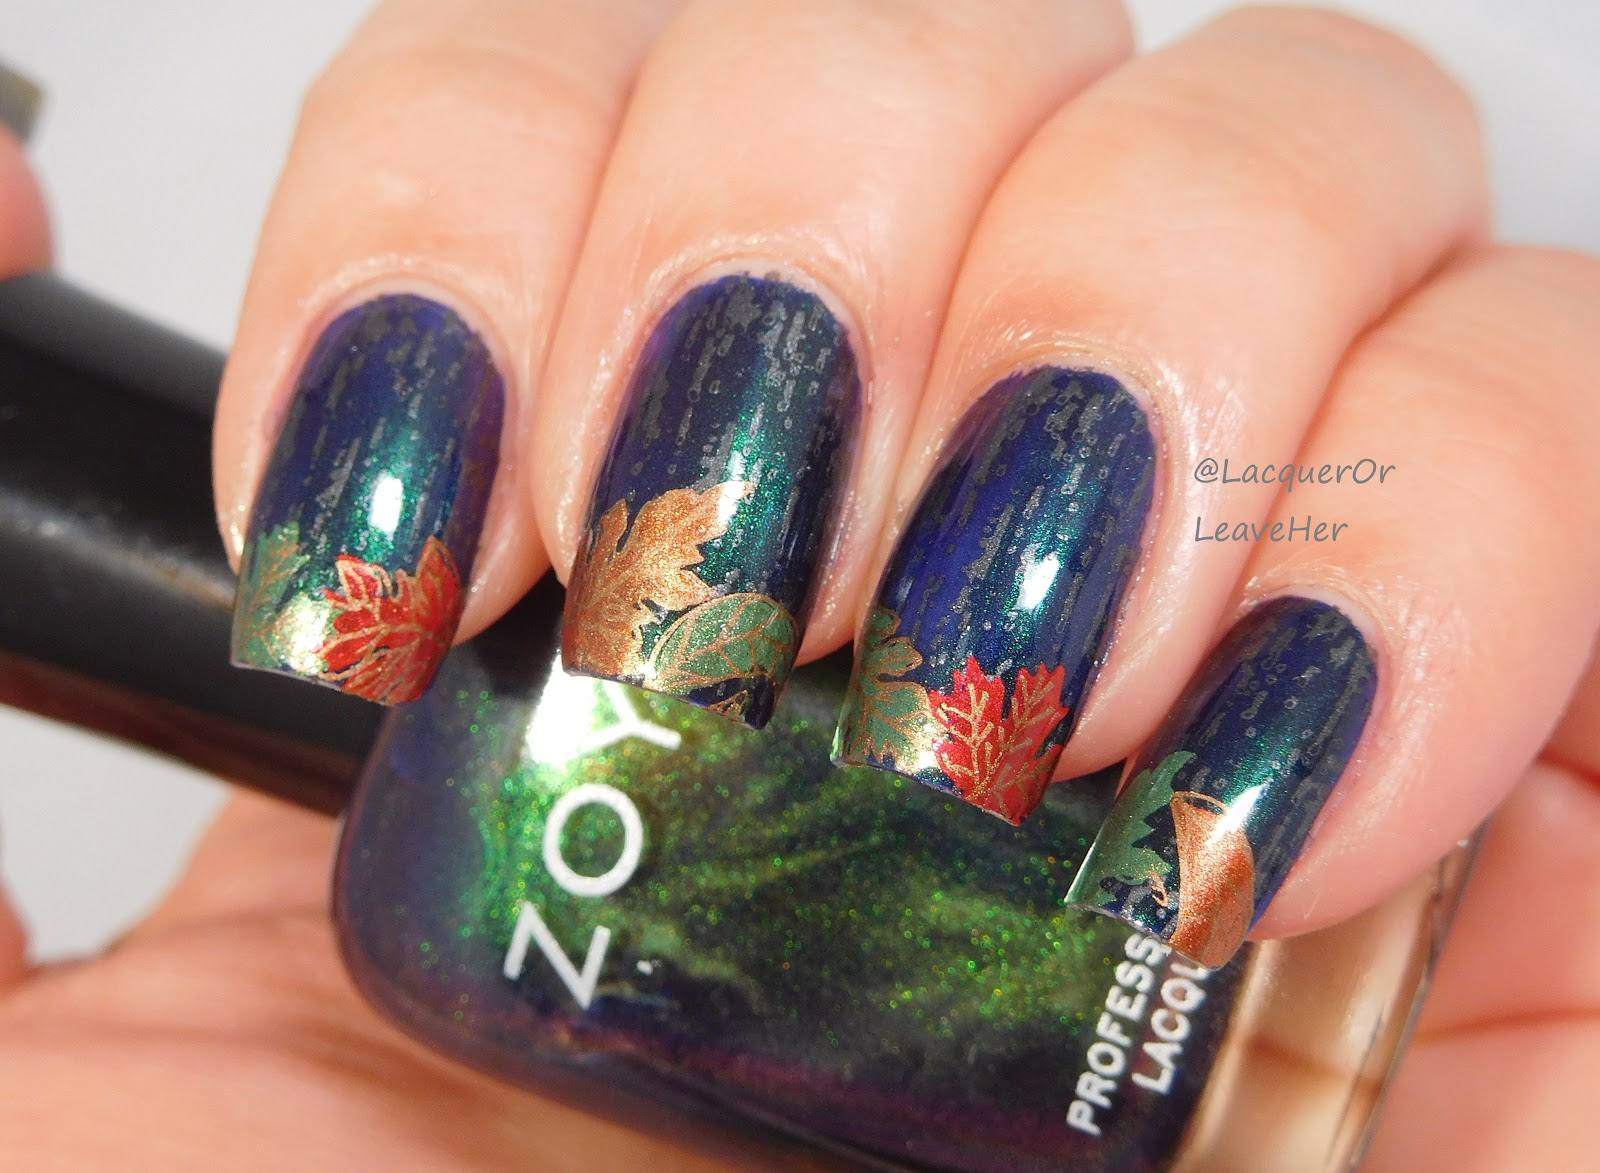 Lacquer or Leave Her!: NOTD & Tutorial: Rainy Fall Night